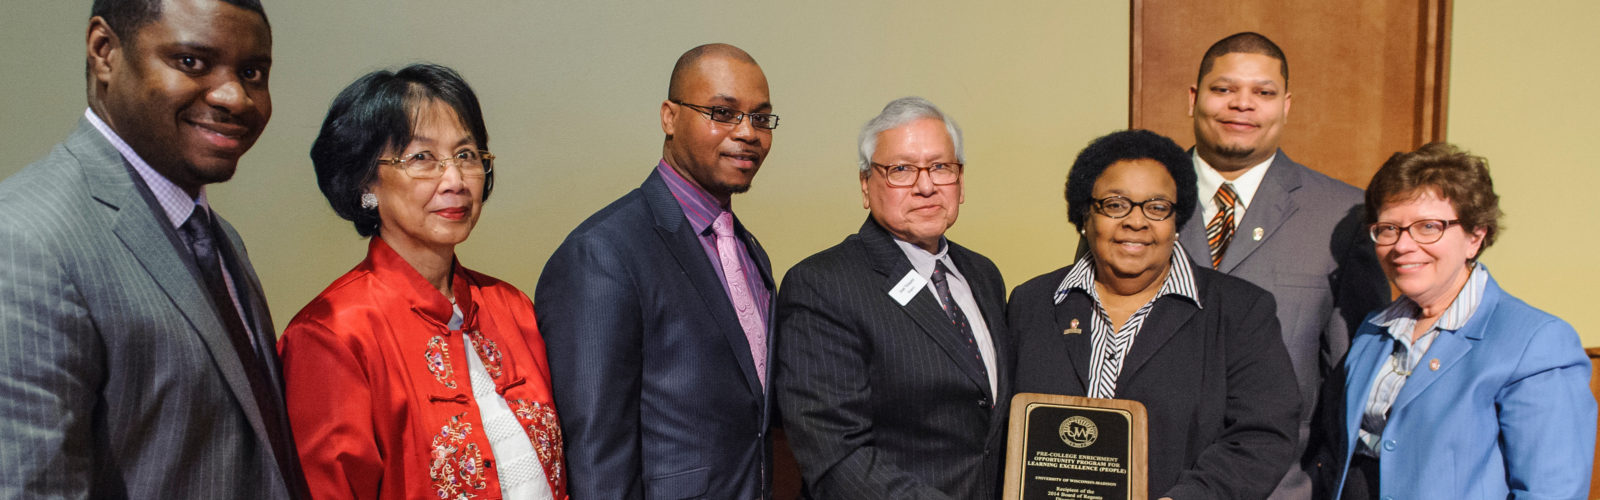 Members of the UW-Madison PEOPLE program, including executive director Jacqueline DeWalt (with award right), receive a Regents Diversity Award from UW regent José Vásquez (with award left) during a UW Board of Regents meeting hosted at Union South at the University of Wisconsin-Madison on Feb. 7, 2014. UW-Madison chancellor Rebecca Blank is pictured at right. (Photo by Bryce Richter / UW-Madison)